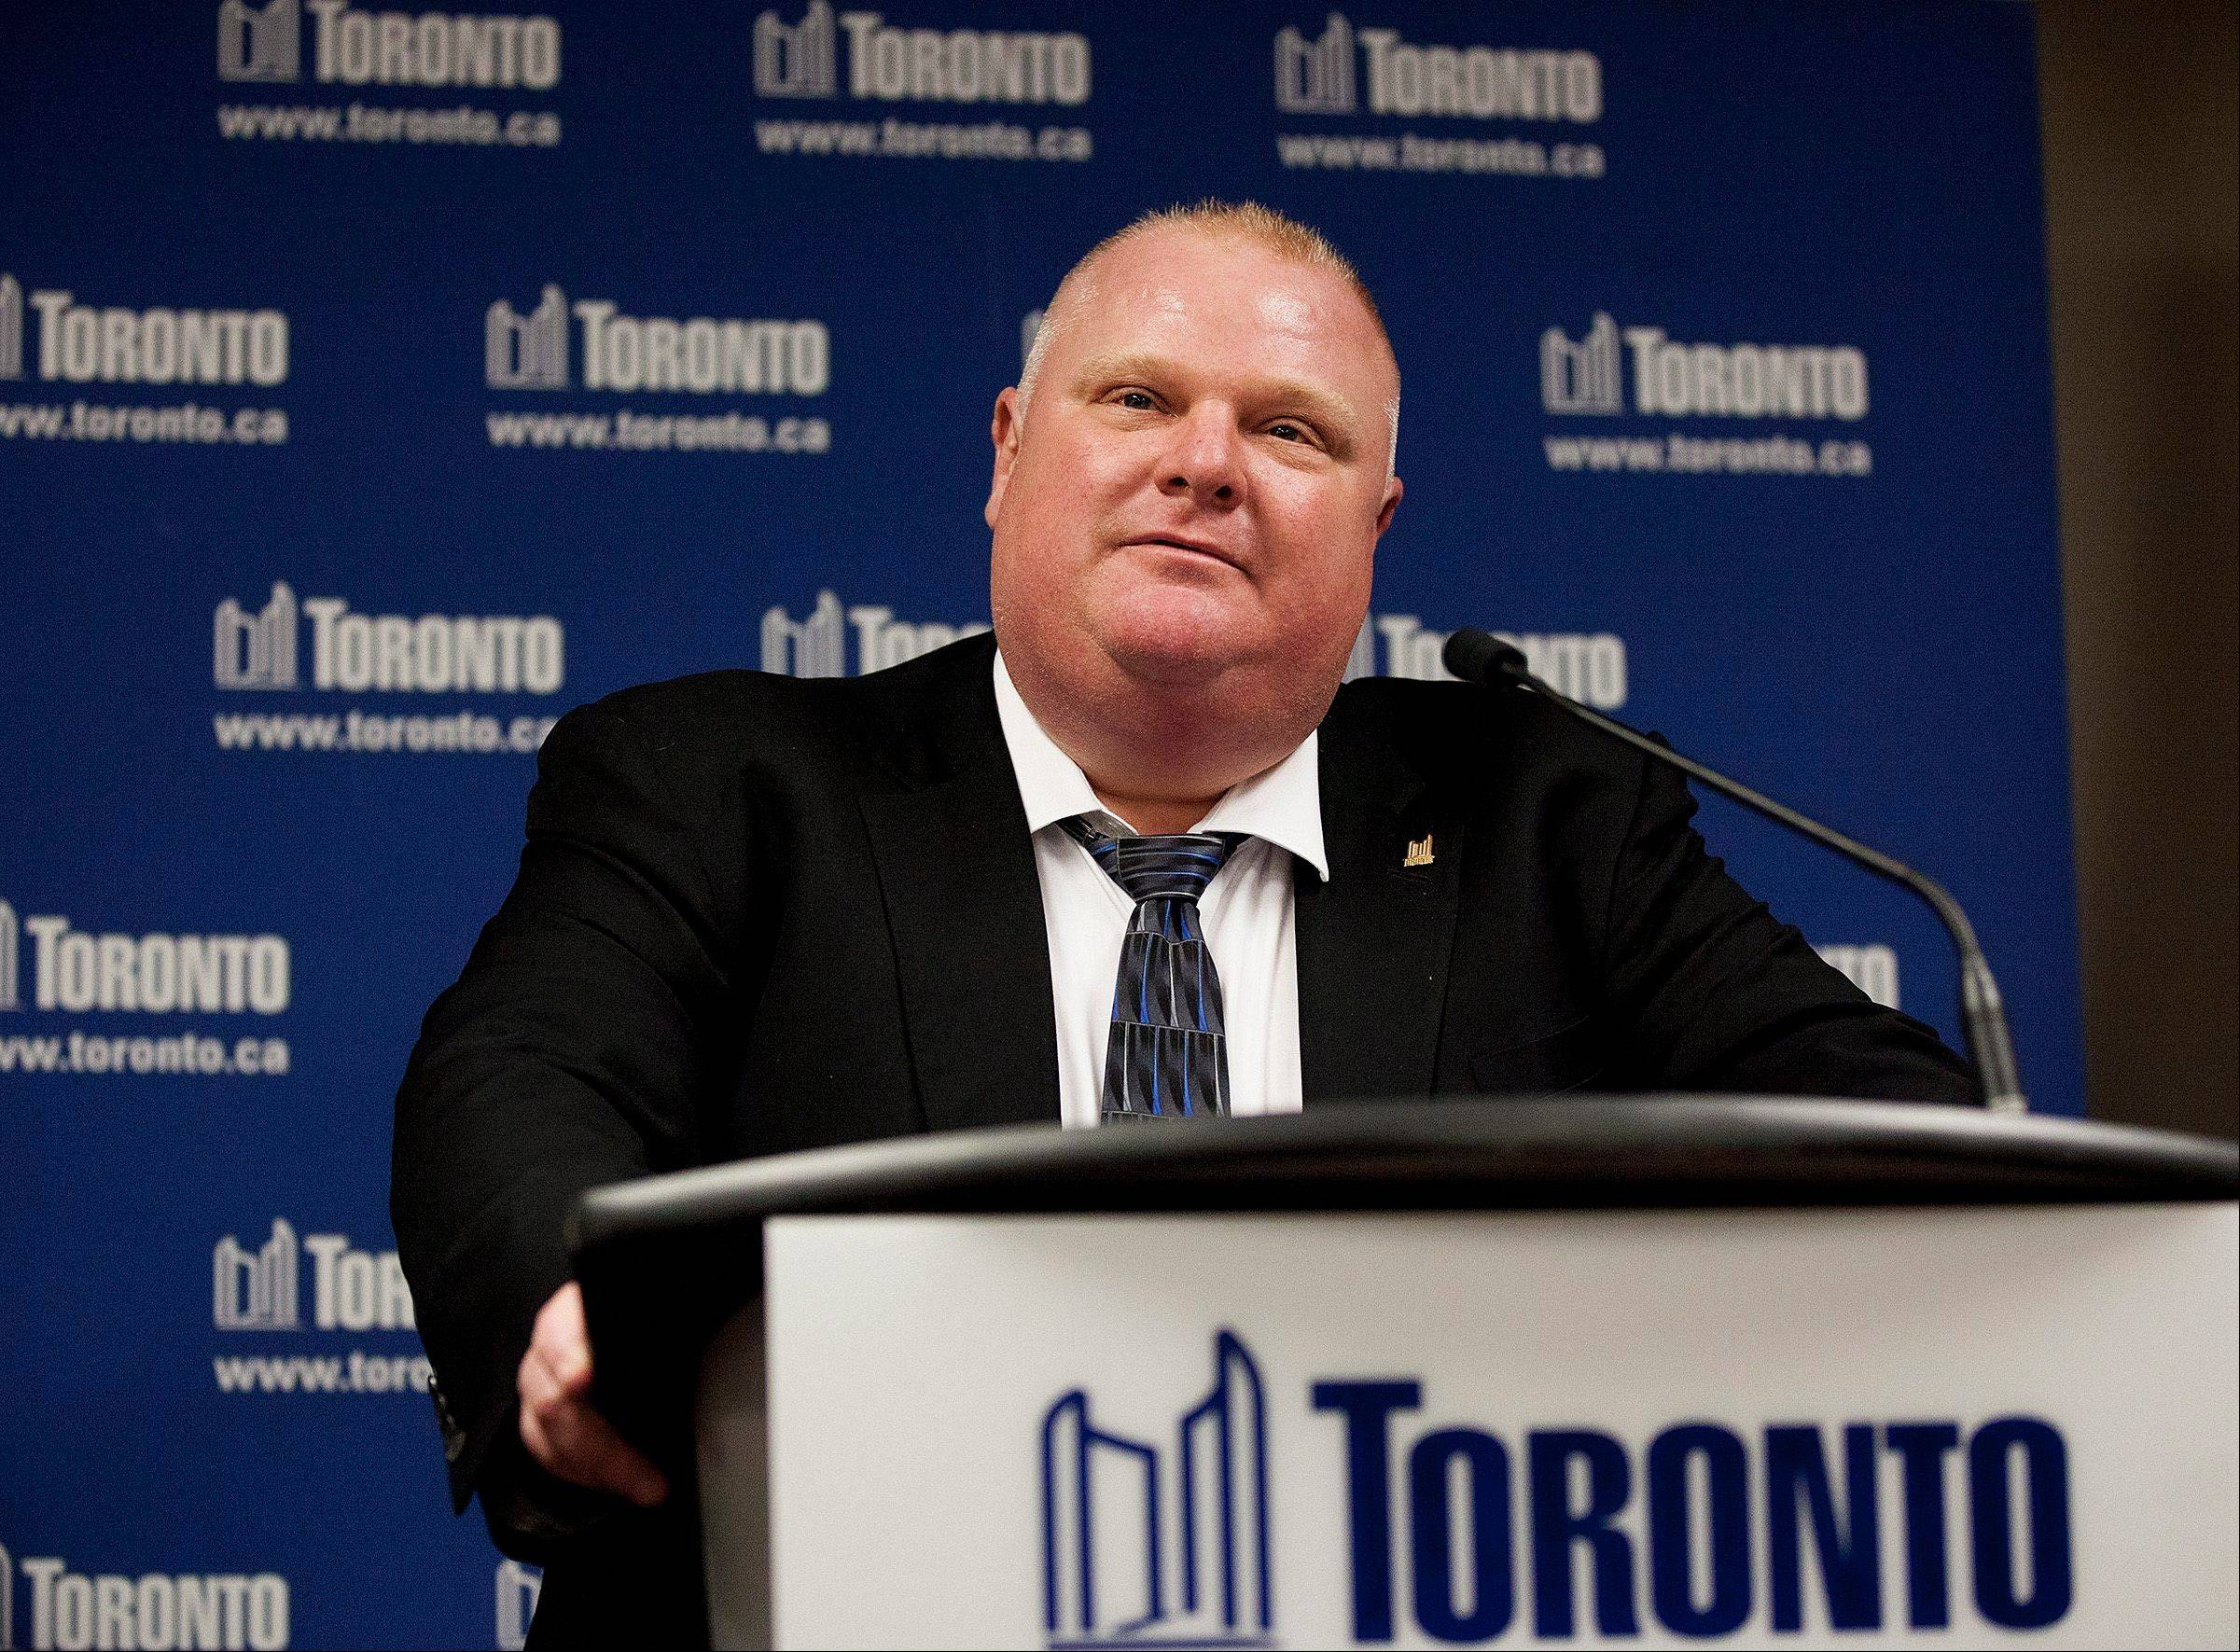 Toronto Mayor Rob Ford denies allegations that he smokes crack cocaine as he speaks Friday to the media at Toronto City Hall.